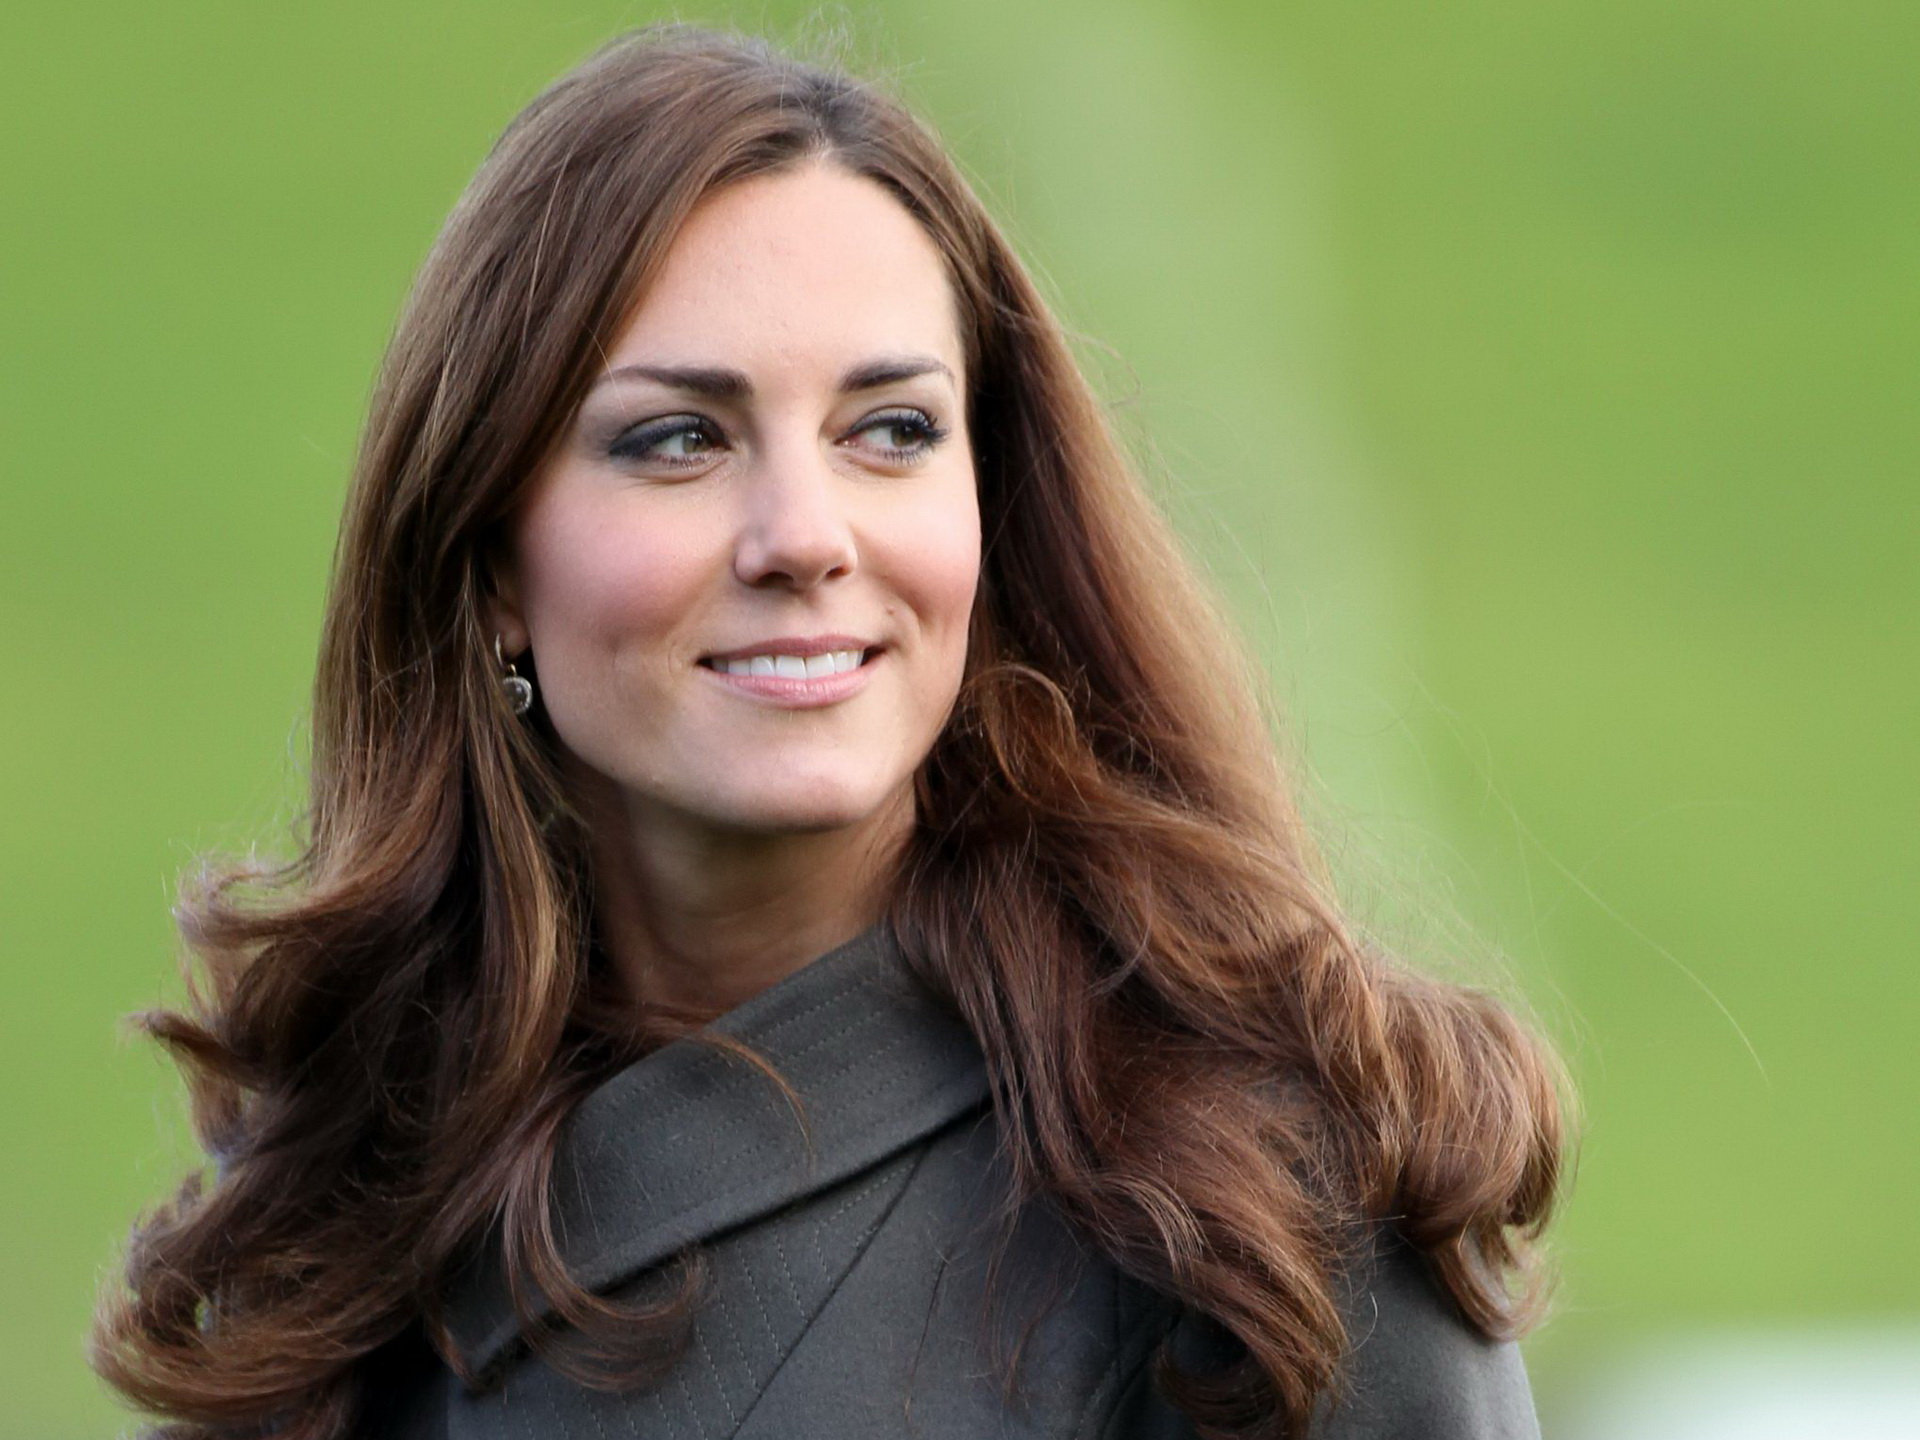 Kate Middleton Wallpaper 2   1920 X 1440 stmednet 1920x1440